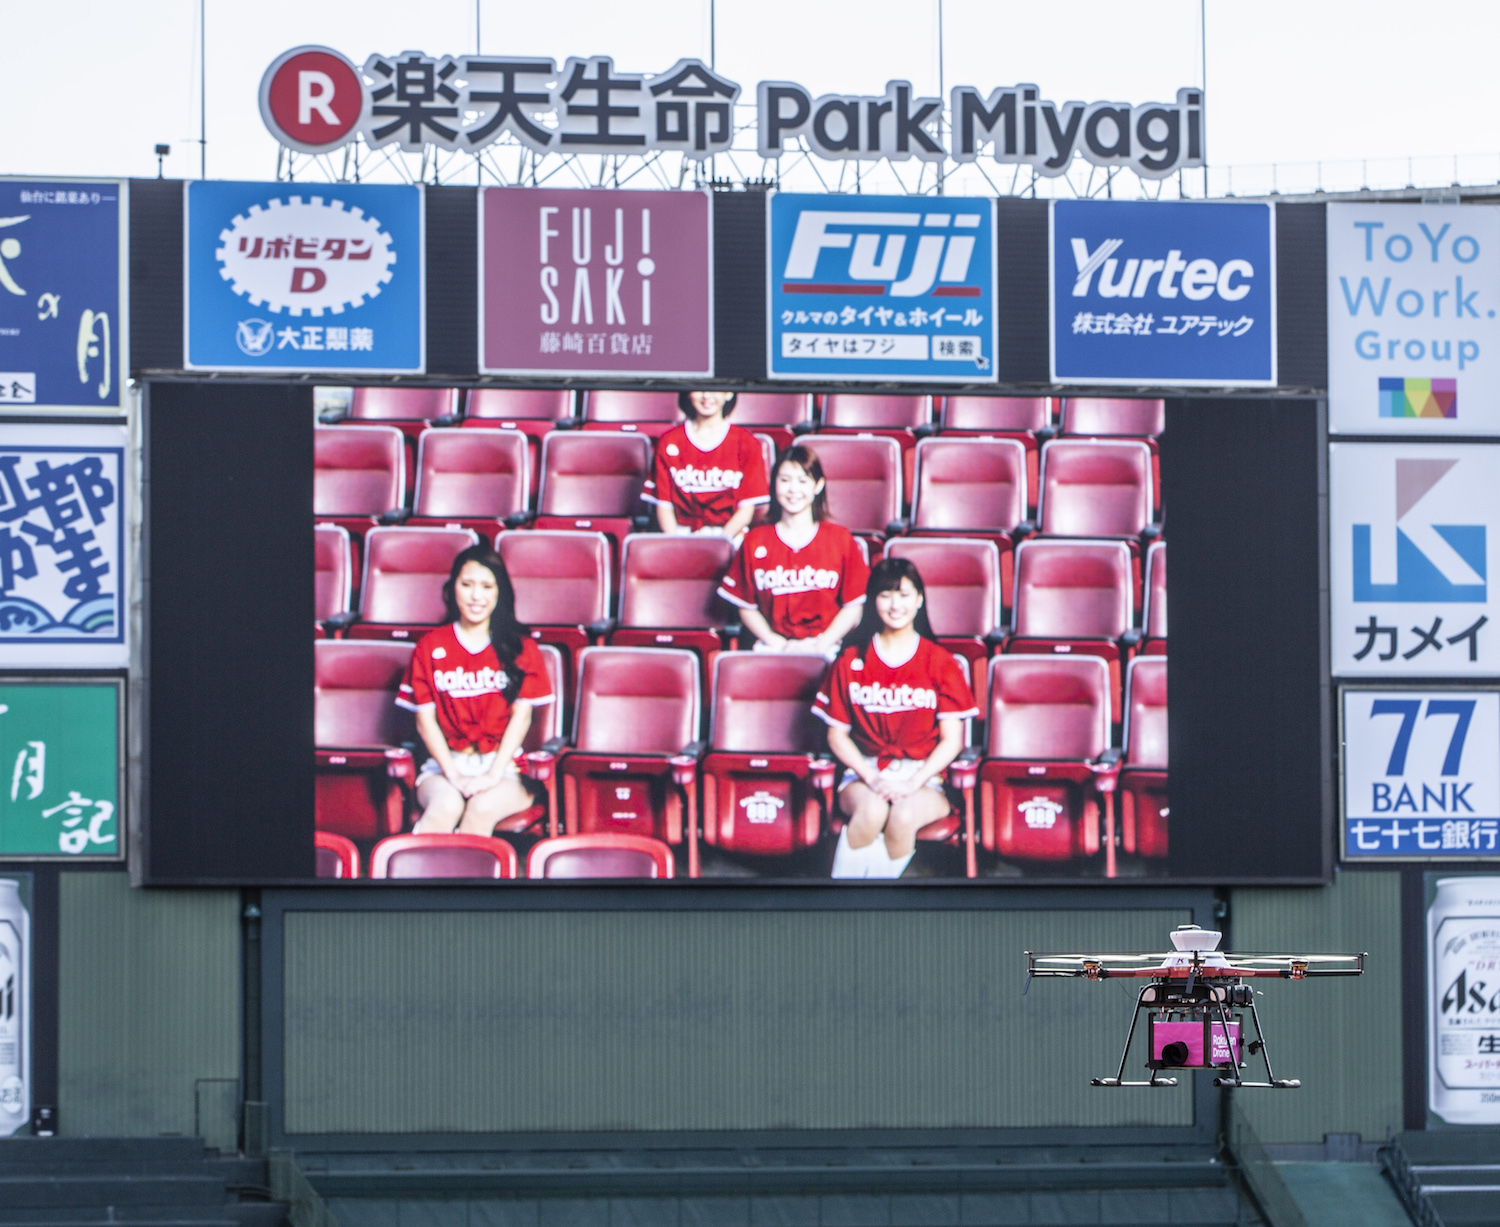 """Rakuten Mobile Network held a trial of a """"smart stadium"""" concept aimed at demonstrating the extensive applications of 5G network technologies."""